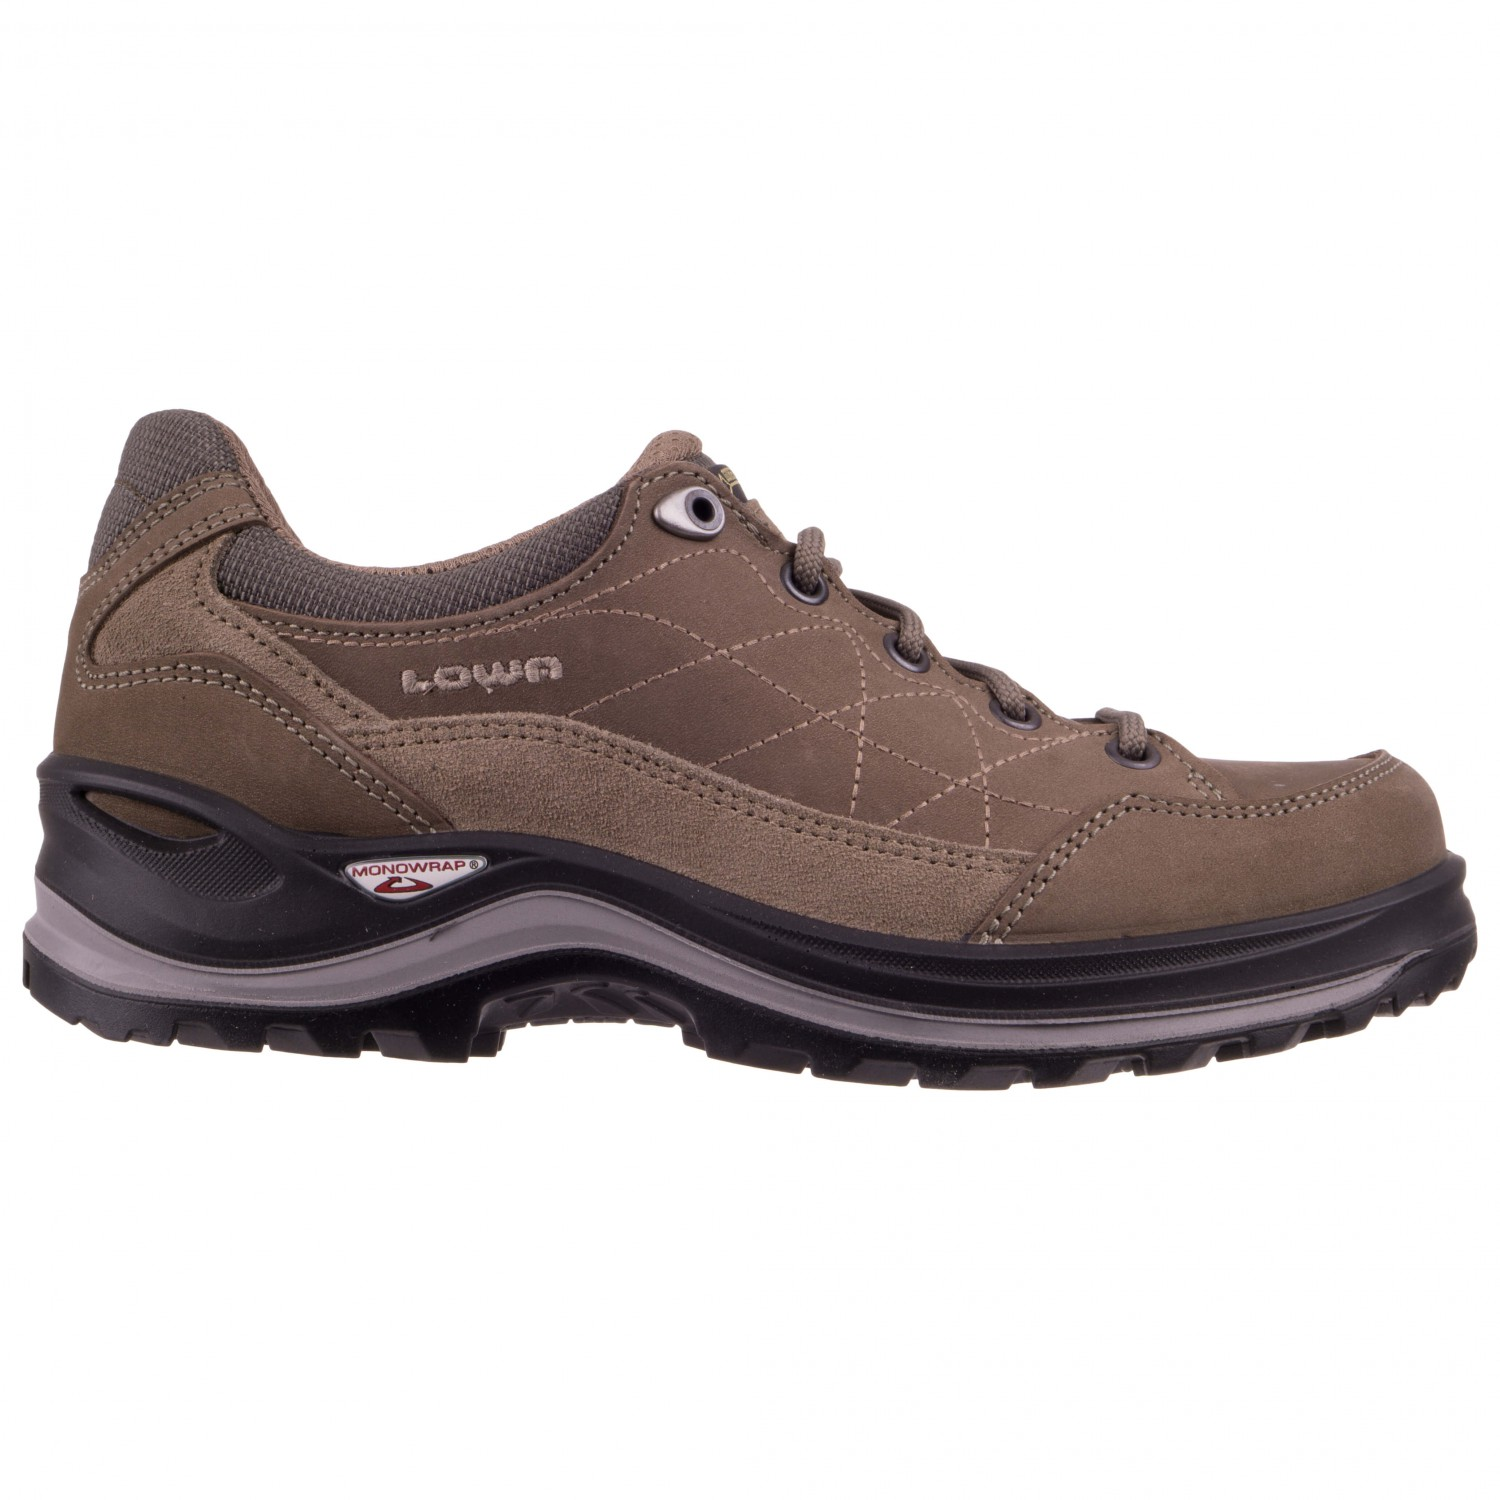 Lowa Renegade Gtx Lo Shoe Reviews